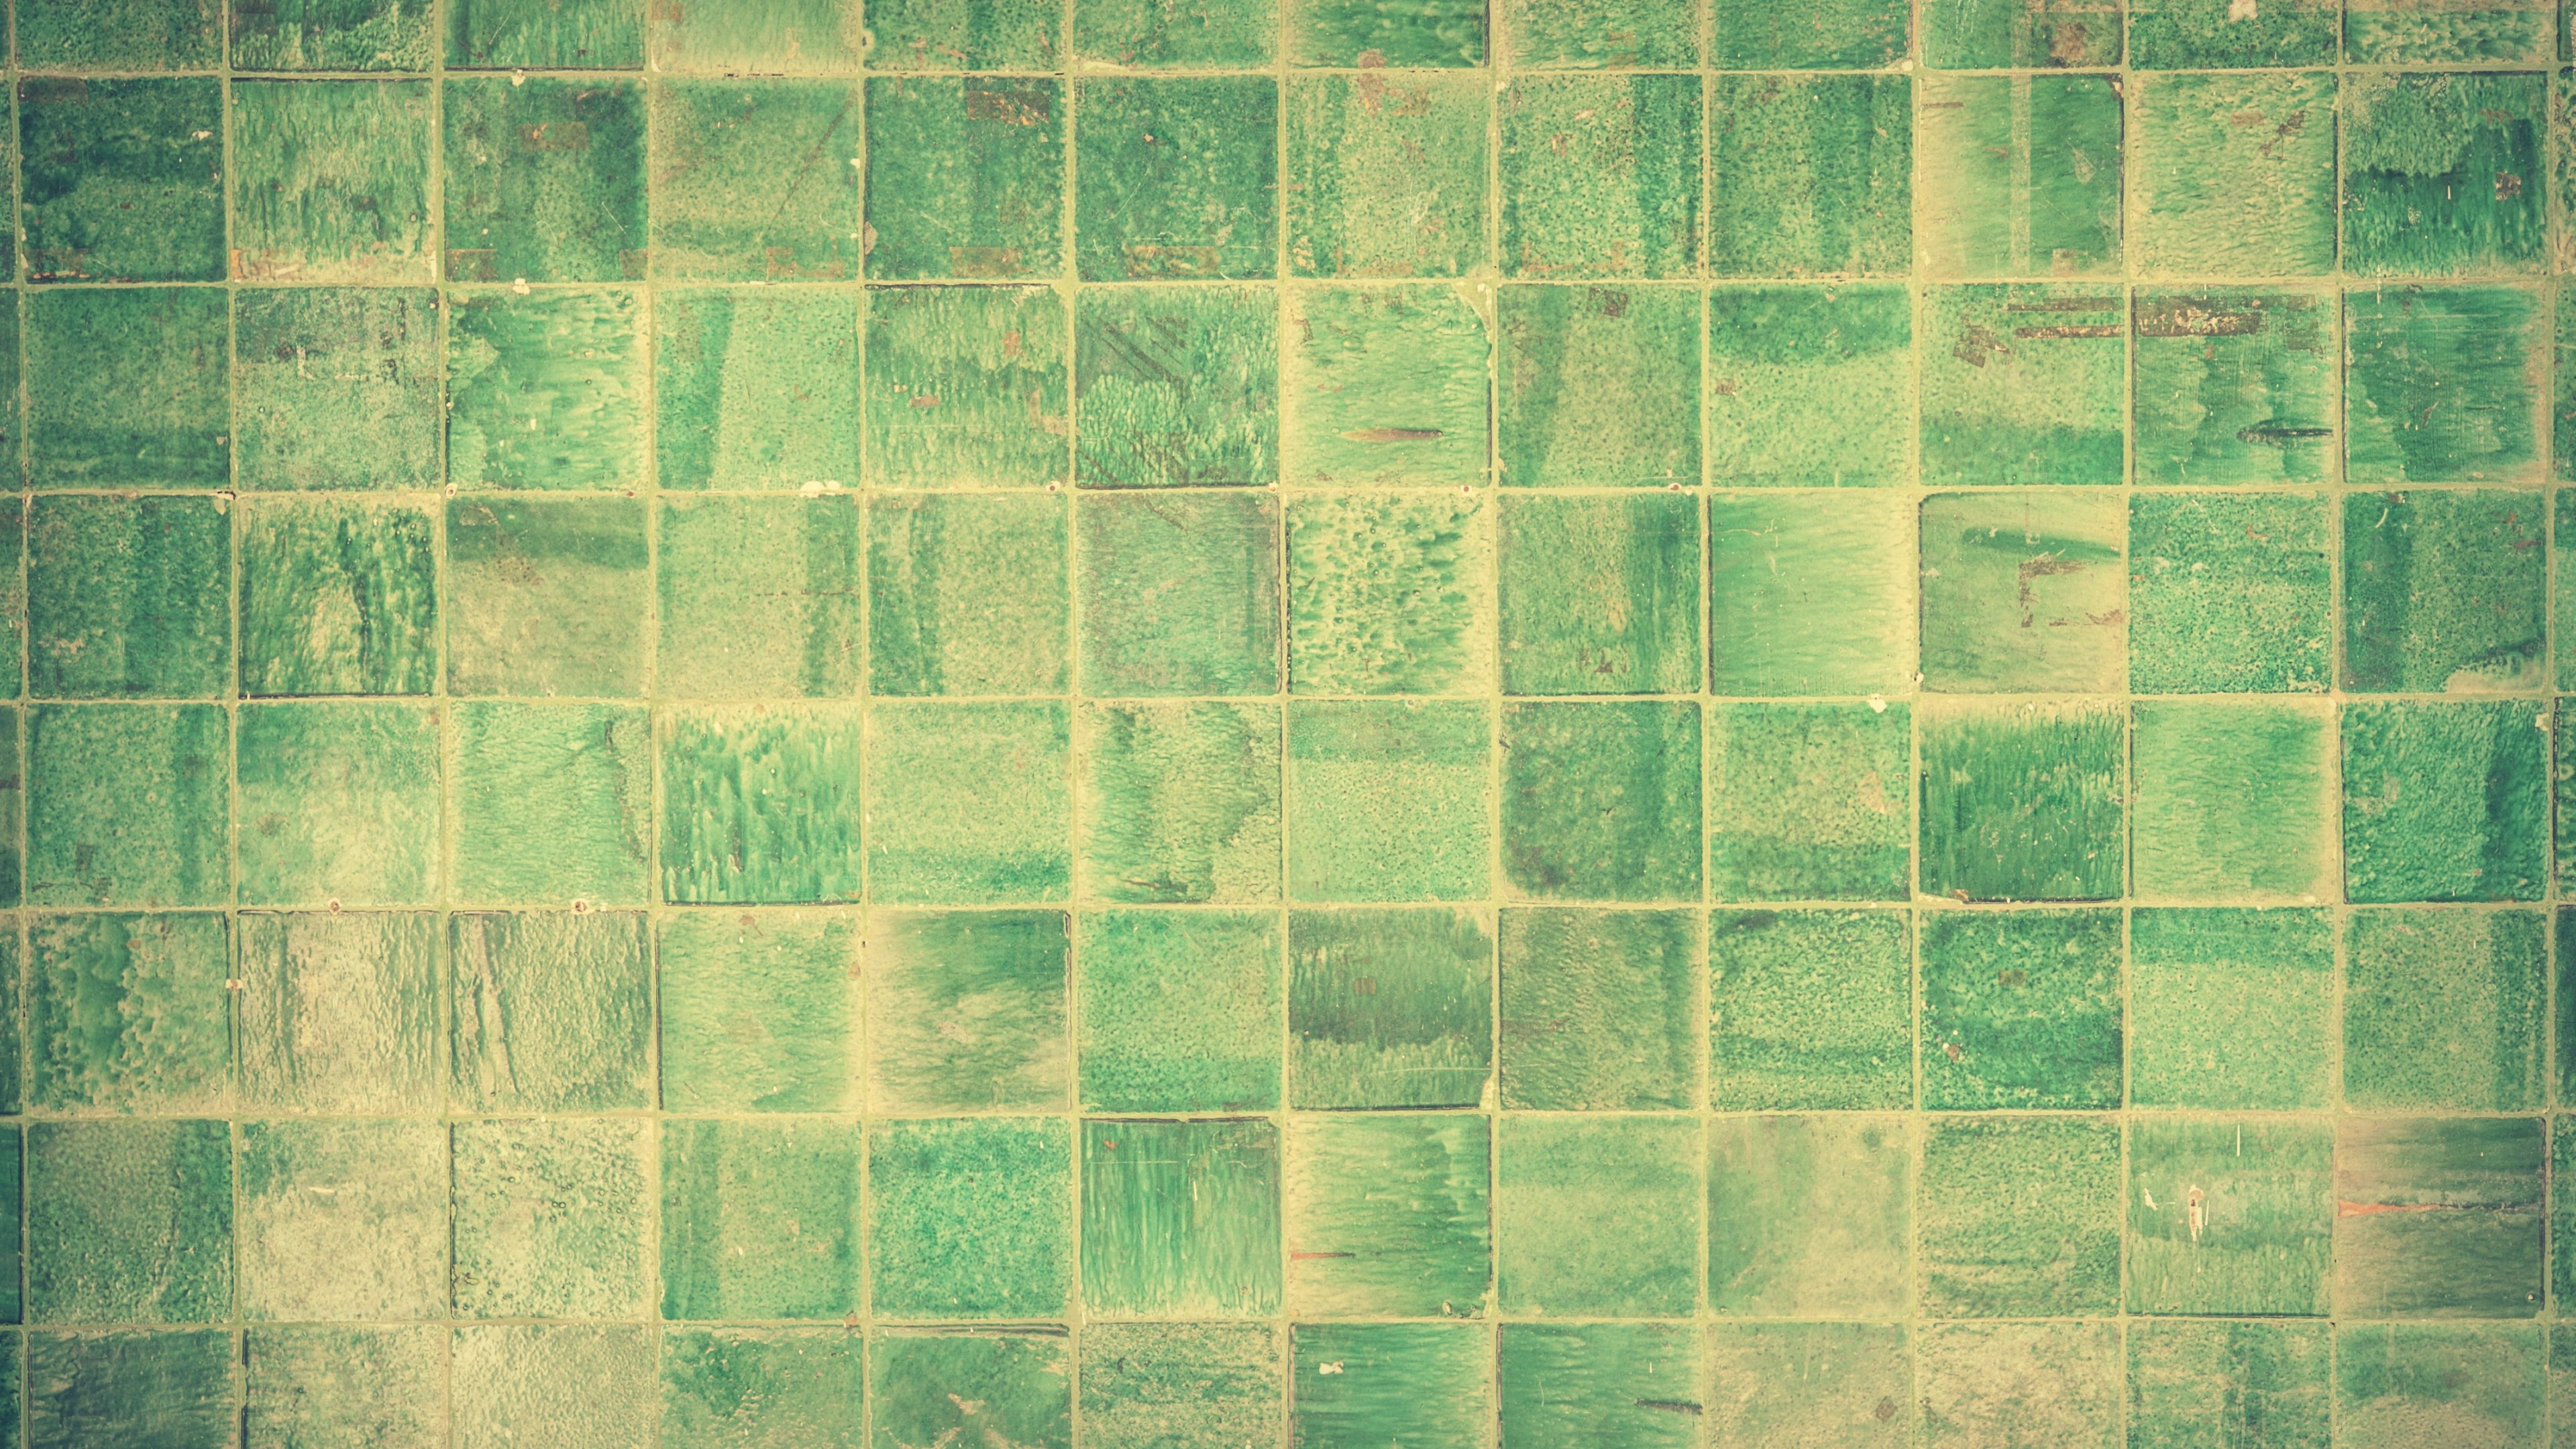 Green Tile Wallpaper Iphone Android Desktop Backgrounds